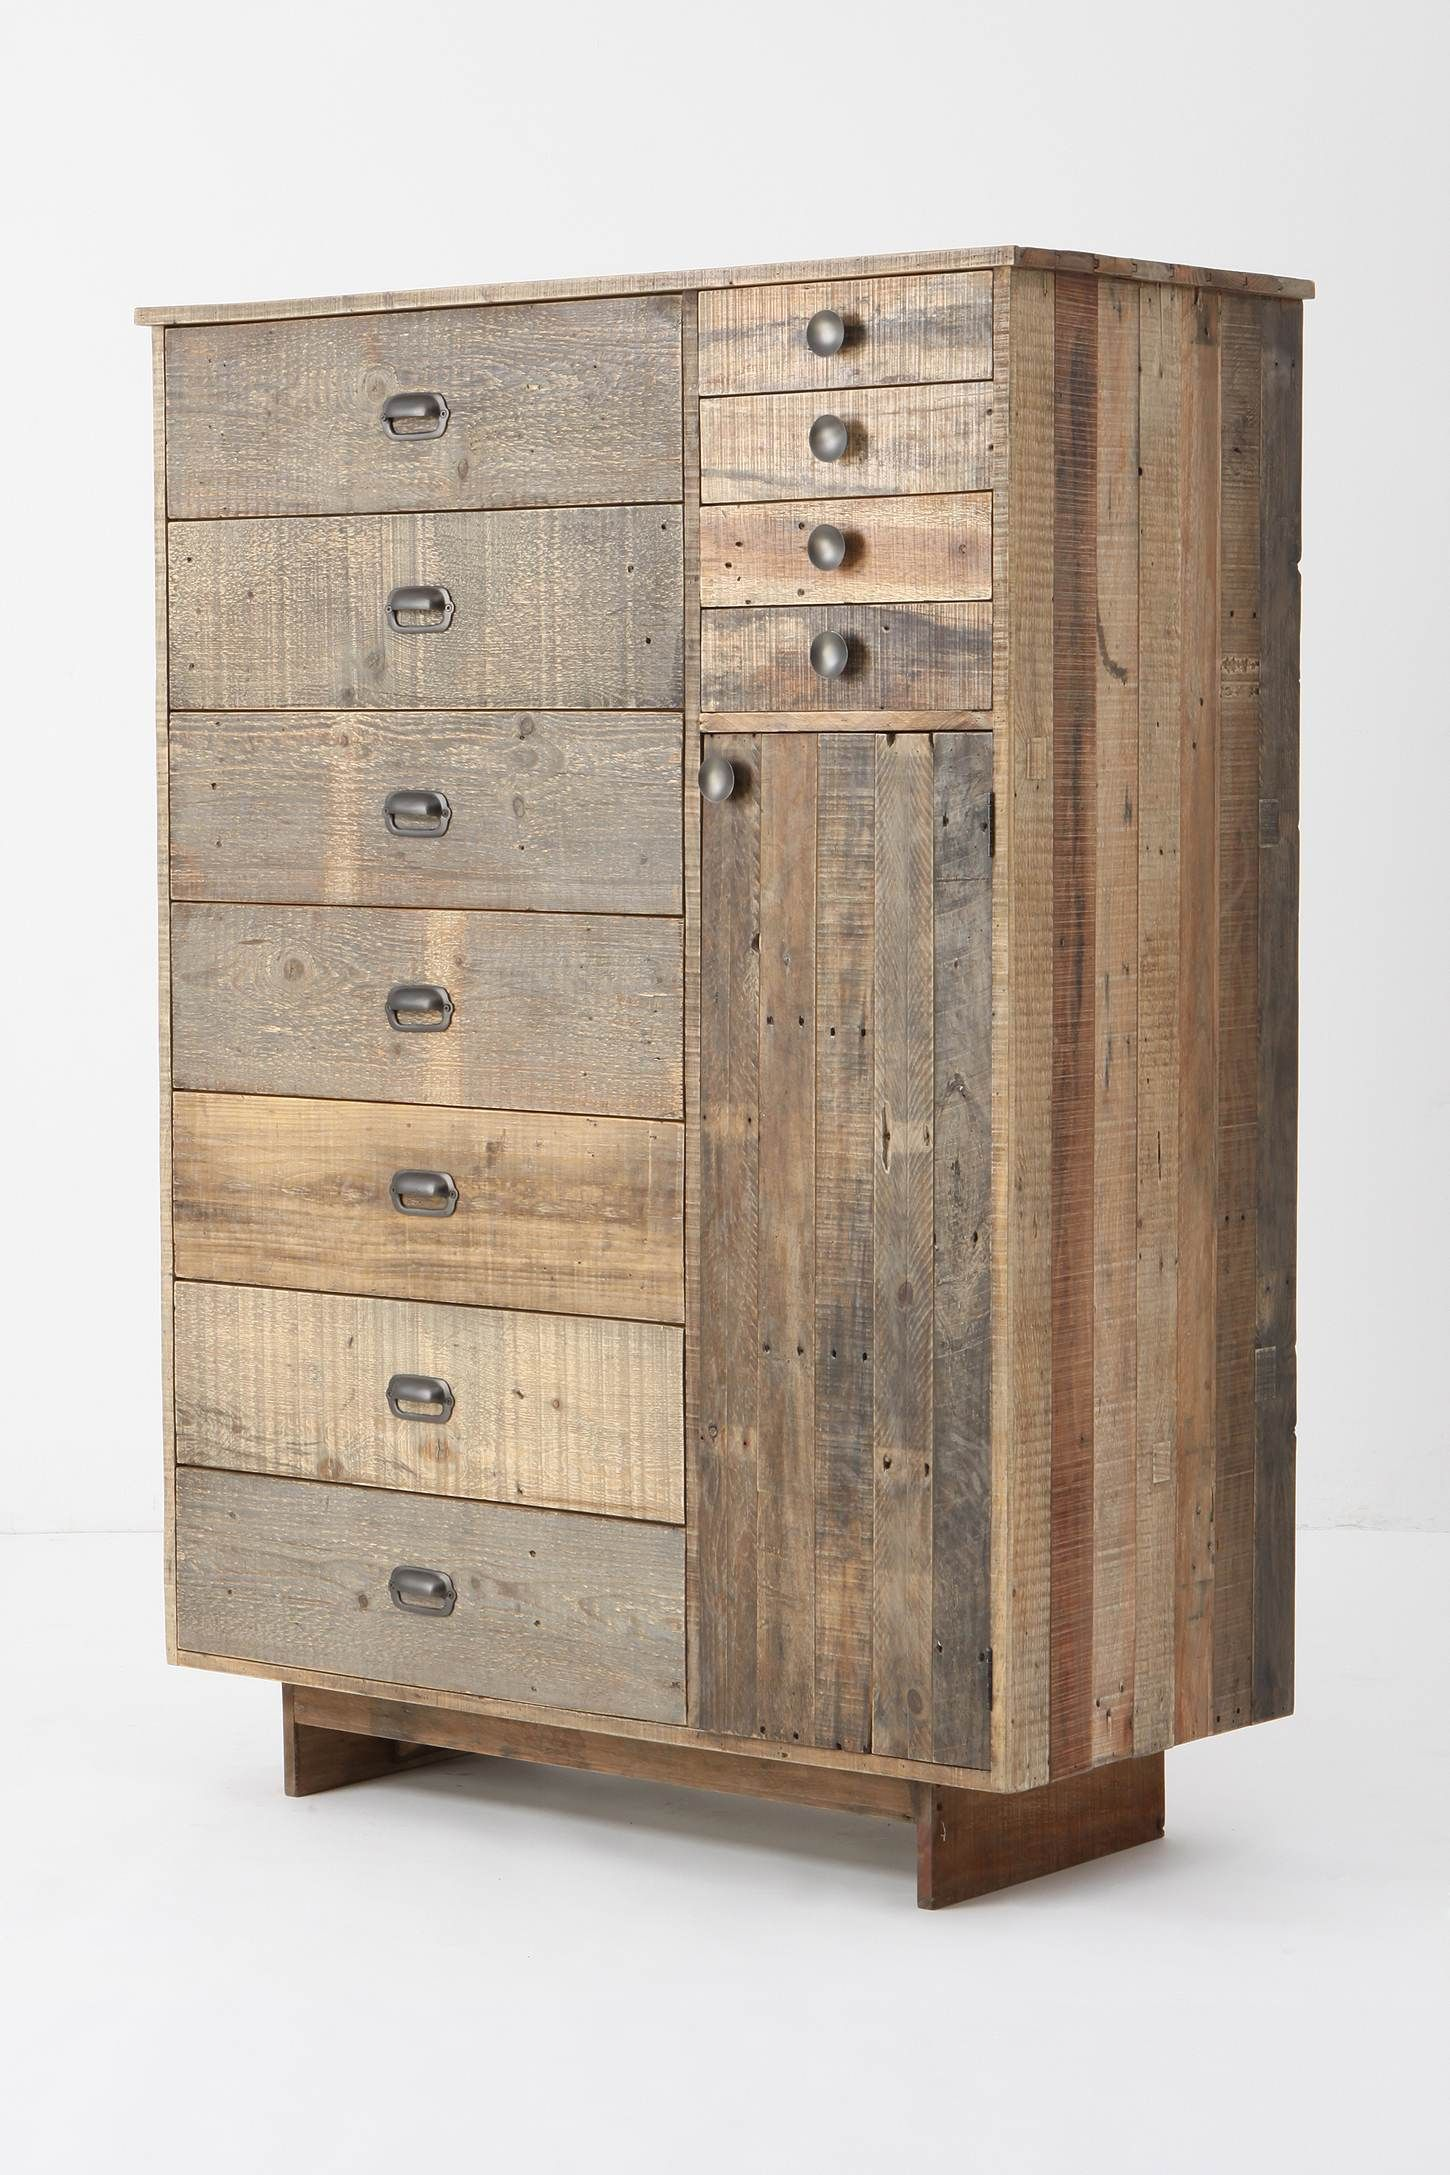 Images about old barn wood furniture on pinterest - Dresser Cabinet With Rustic Reclaimed Wood And Various Size Drawers Anthropologie